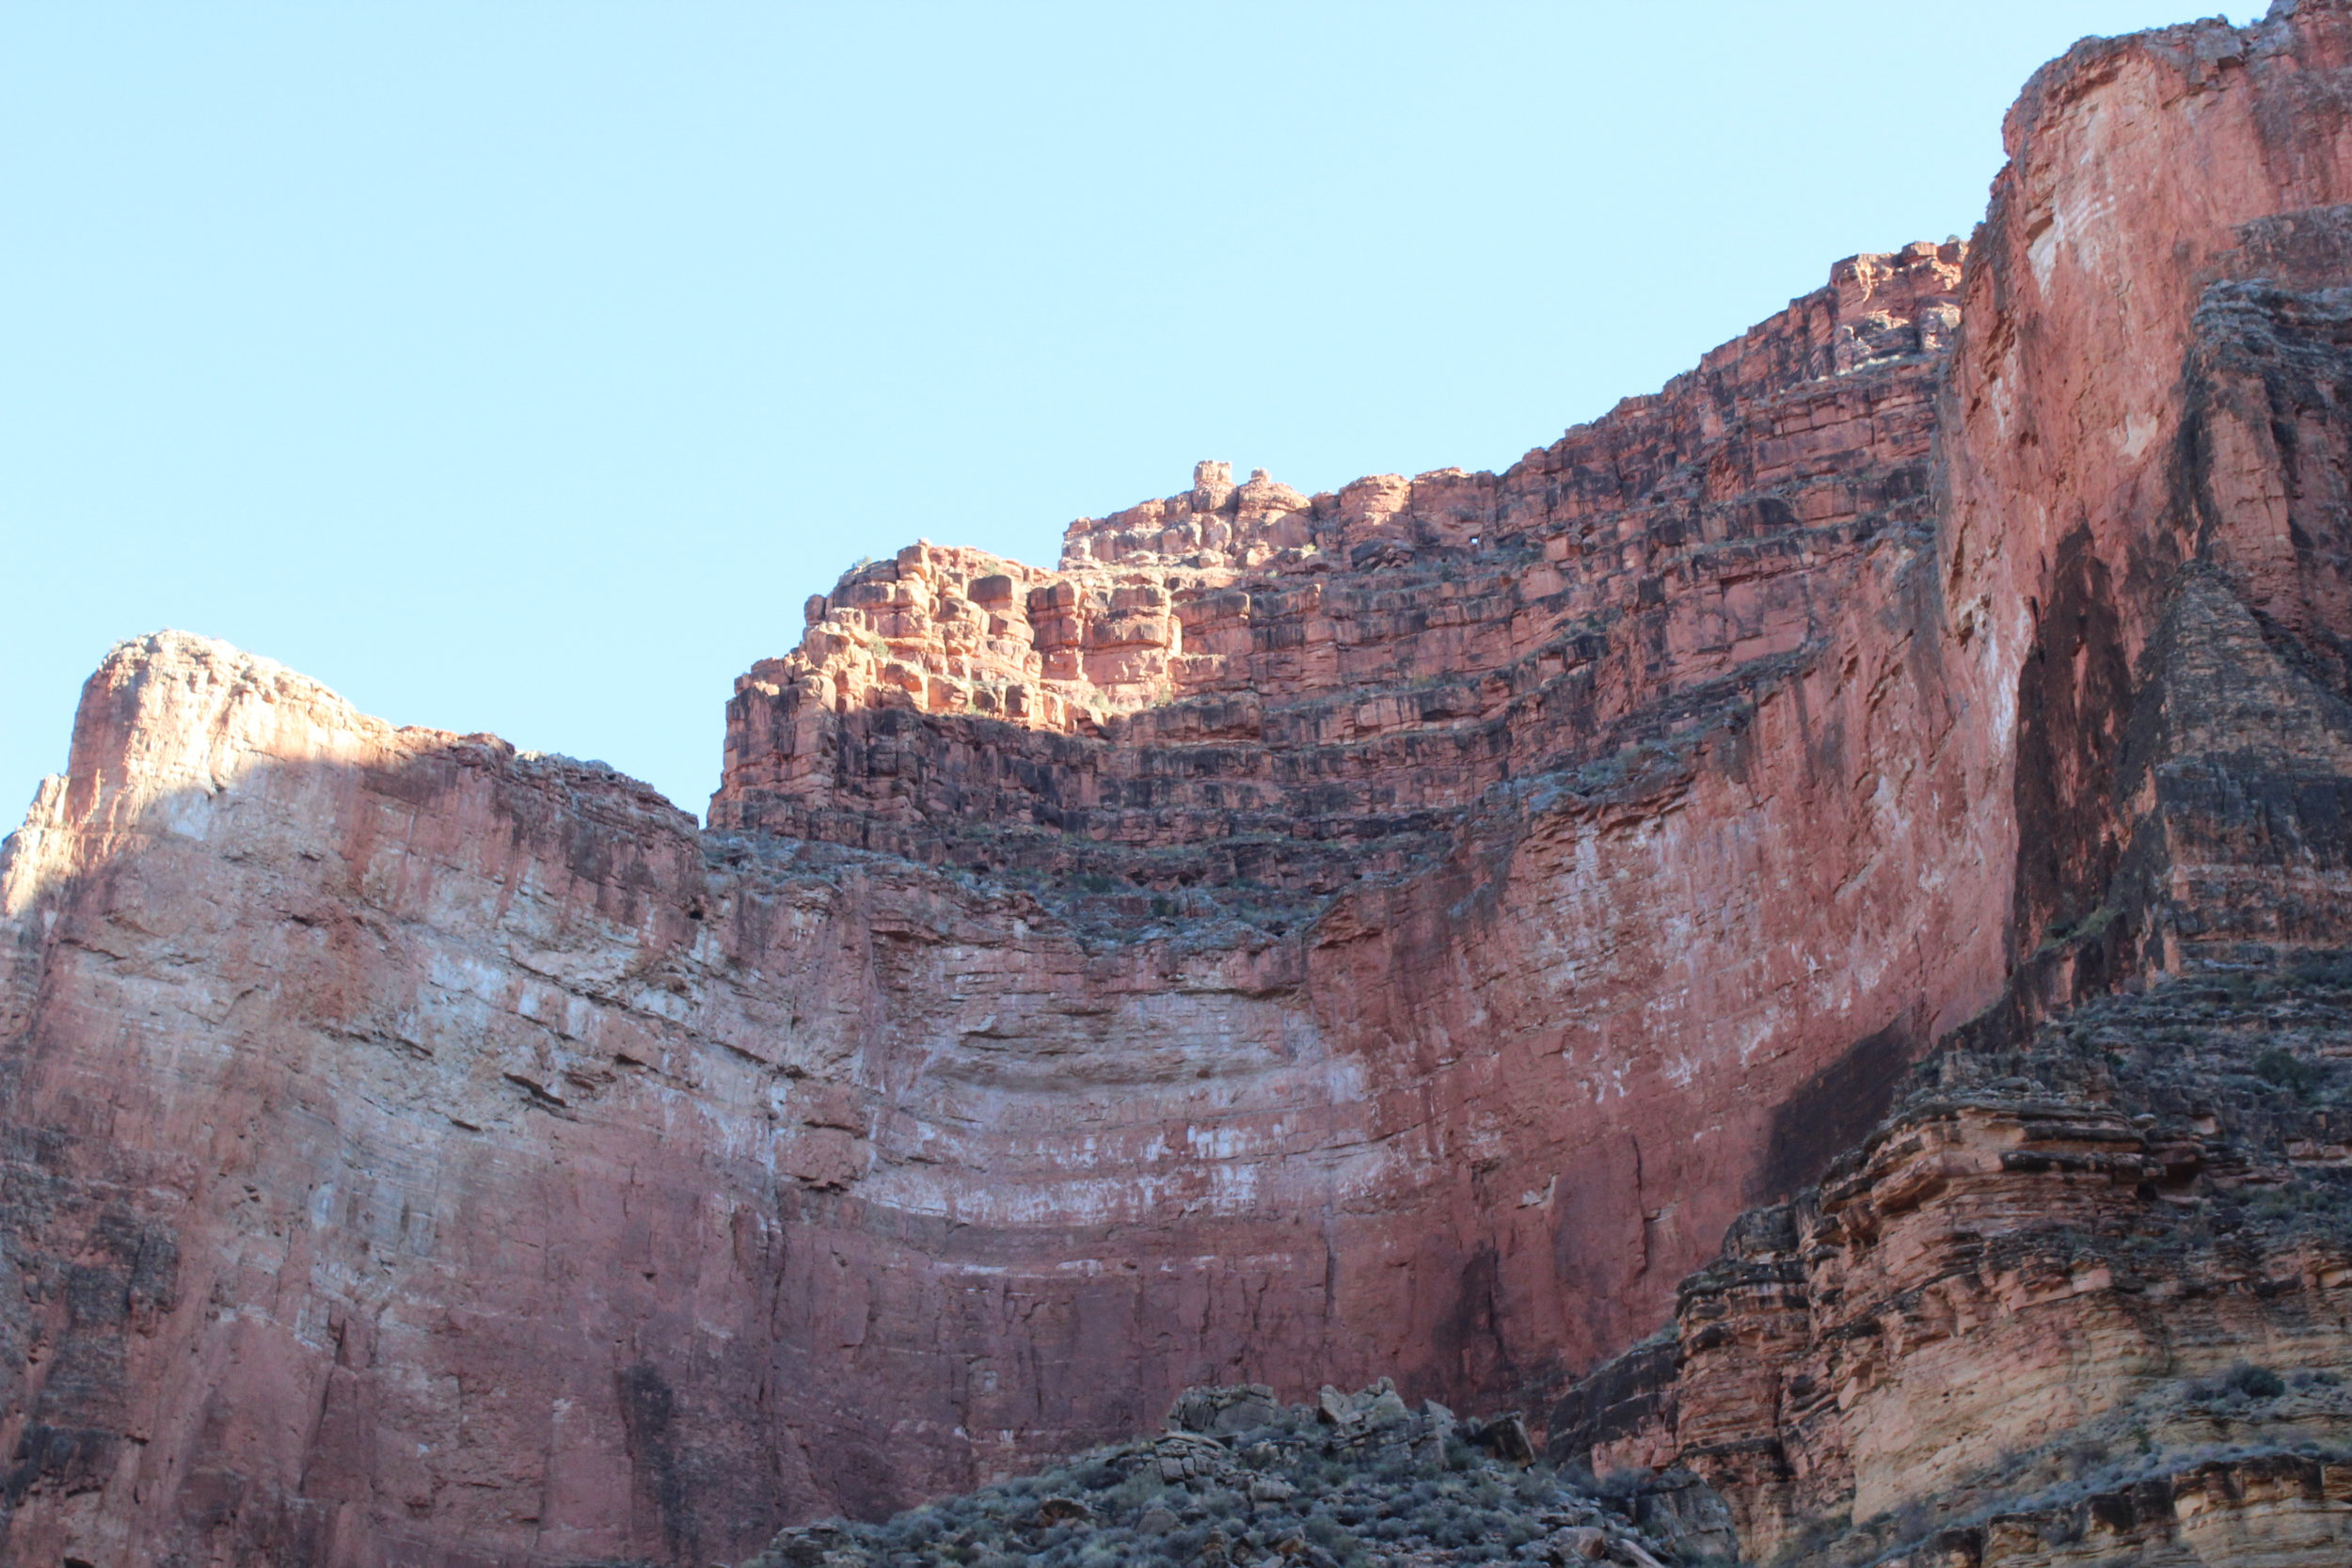 One of the massive ampitheaters in the Redwall Layer